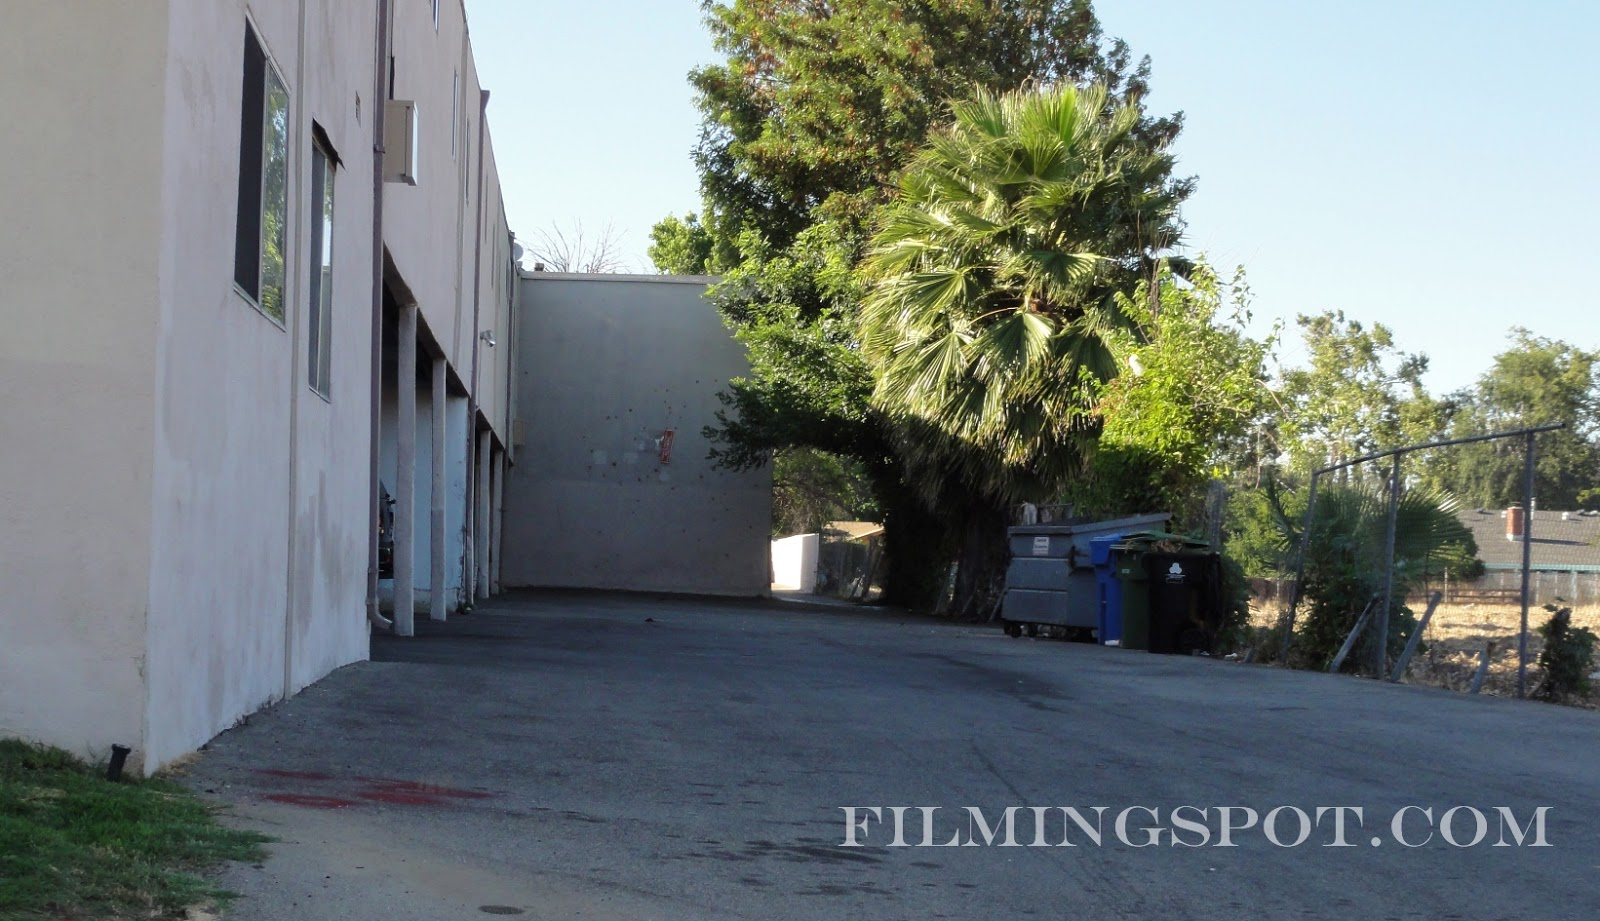 Apartment Building Karate Kid filmingspot - tv & movie filming locations: the karate kid apartment